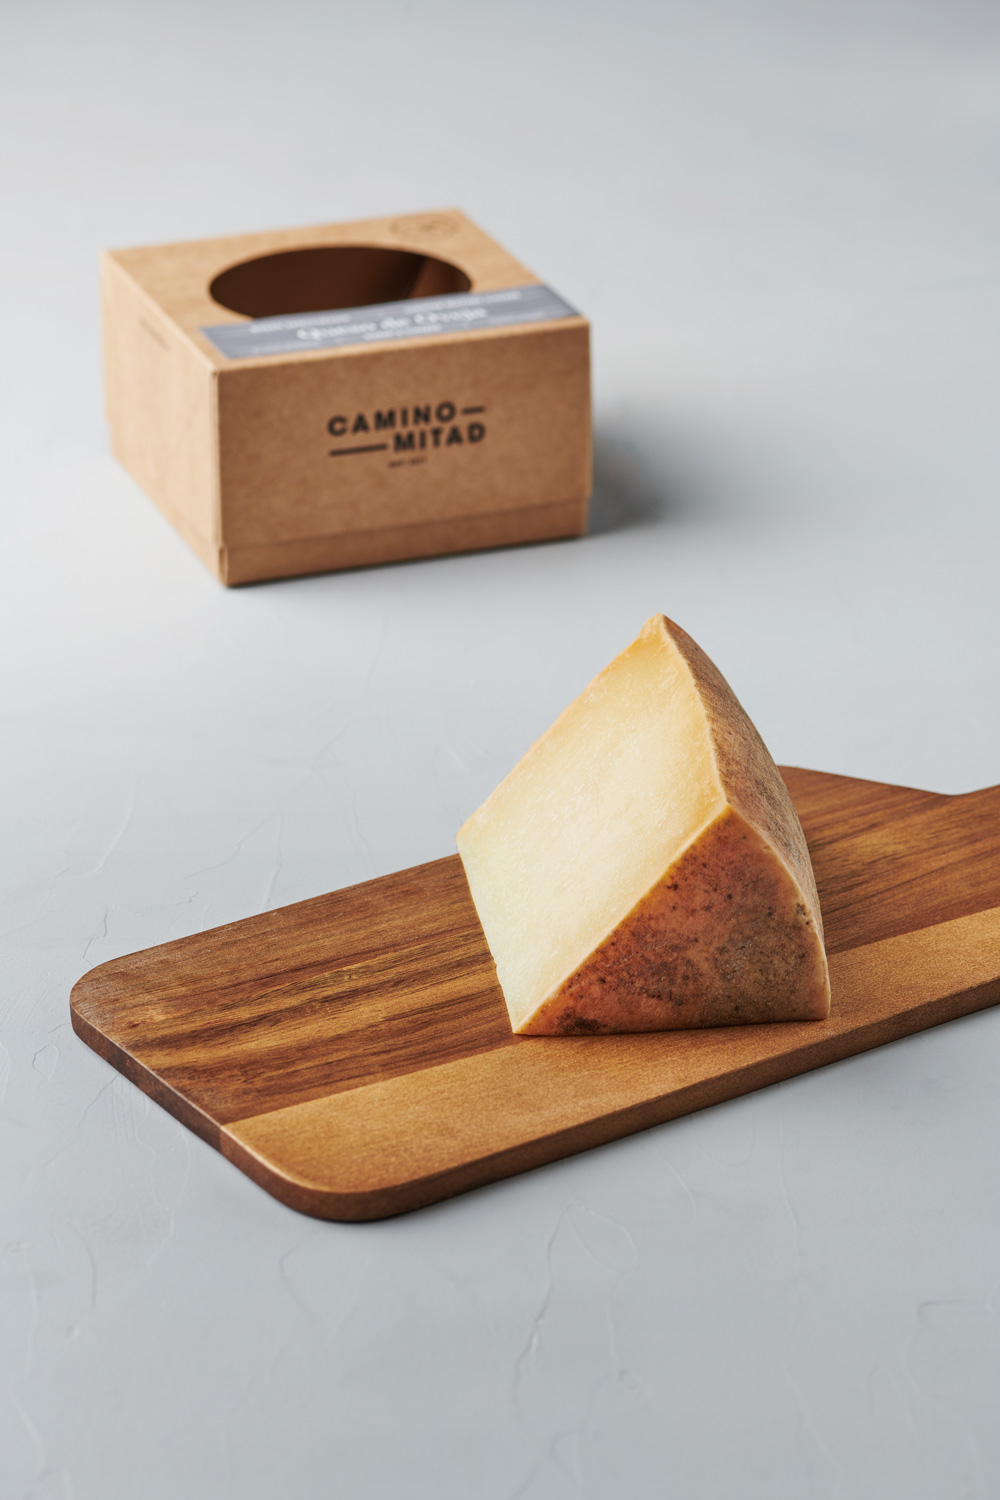 MATURE SHEEP'S CHEESE - Camino Mitad